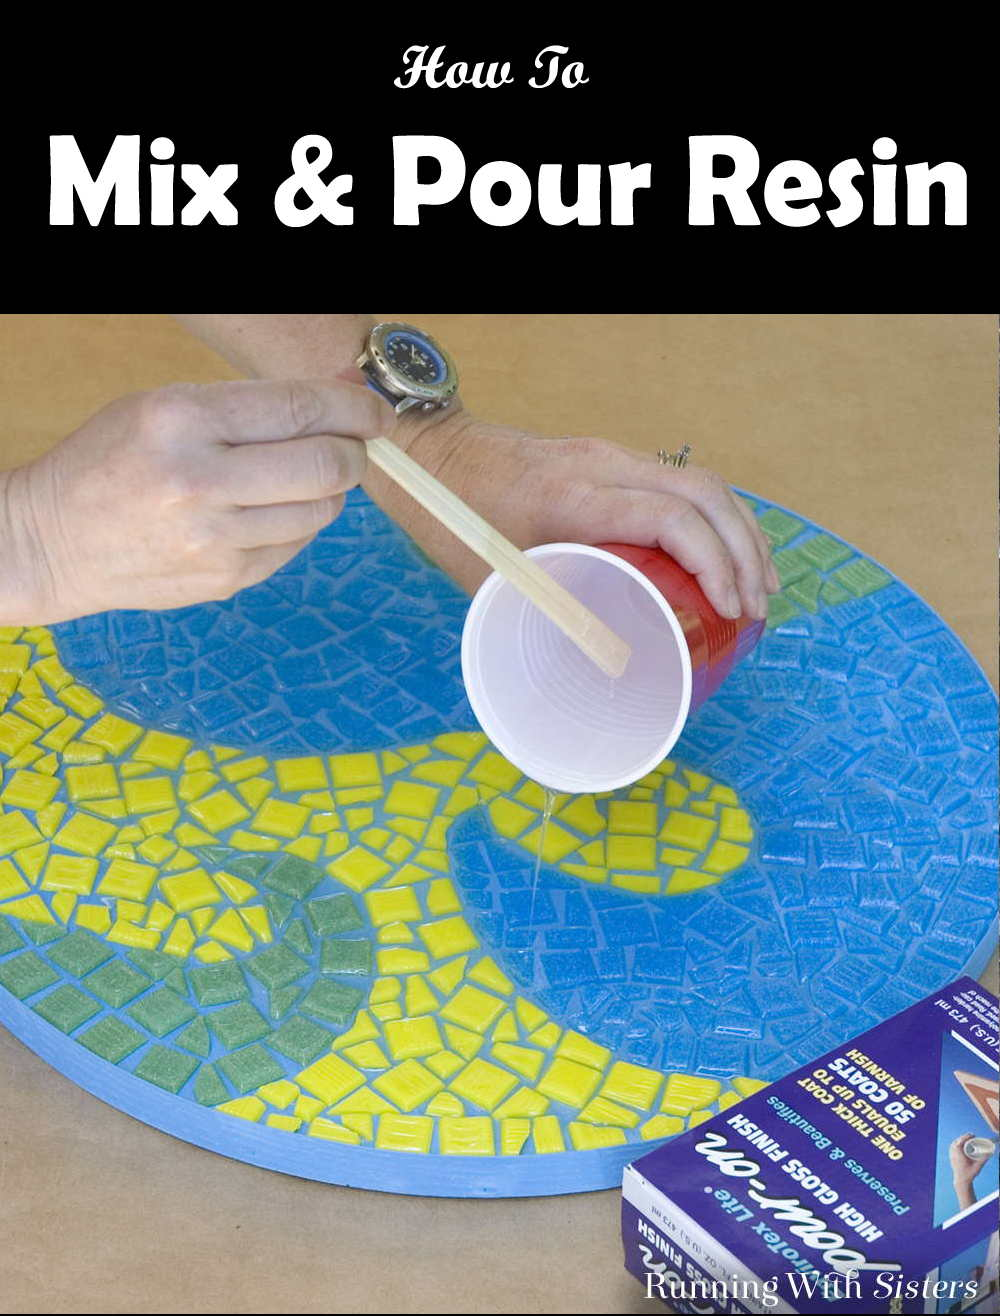 Mix and Pour Resin